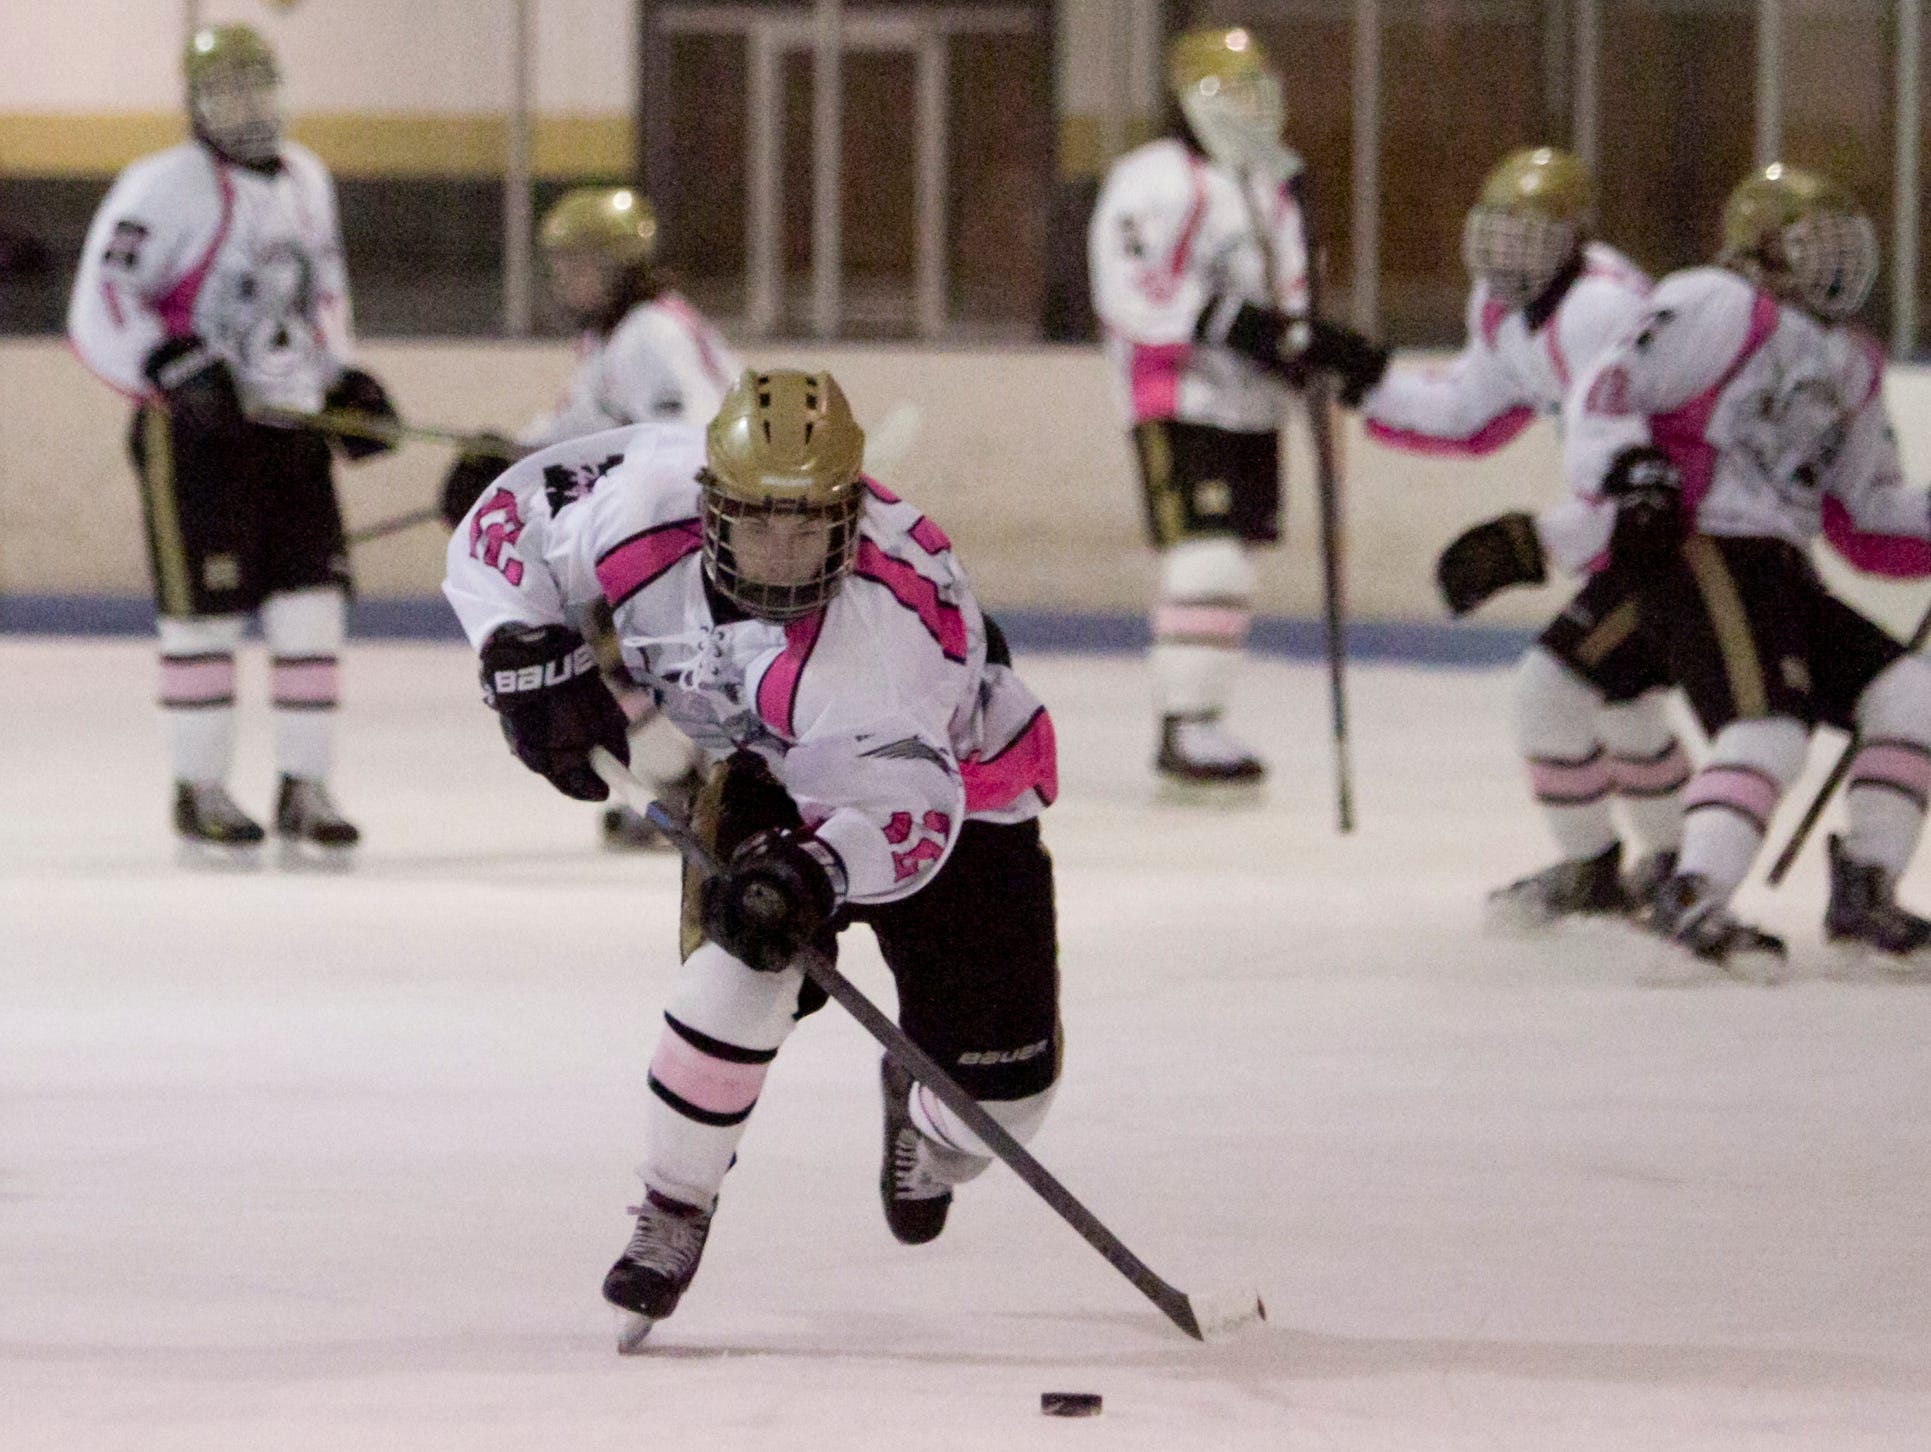 Highlander Max DiCicco scored the game-winning goal against Hartland on Tuesday night.